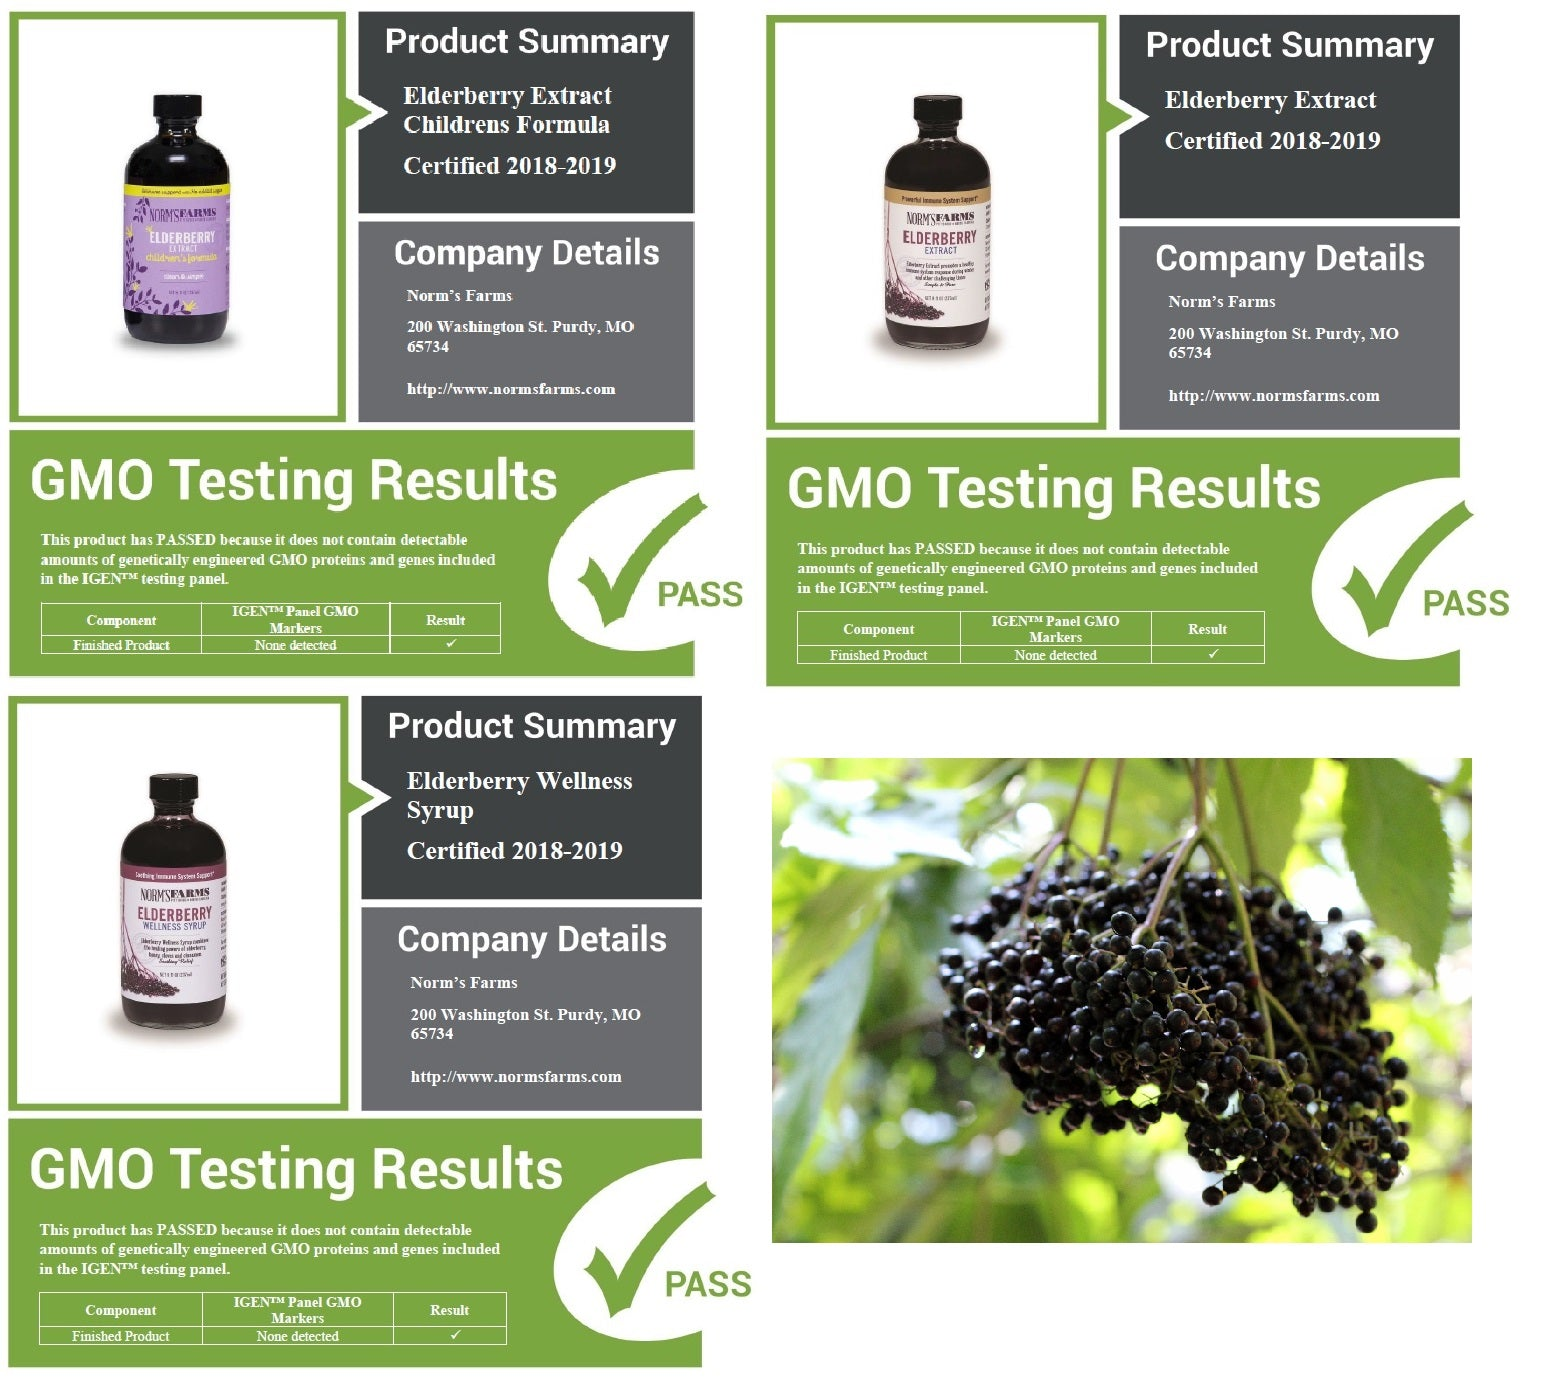 Norms Farms GMO free test results